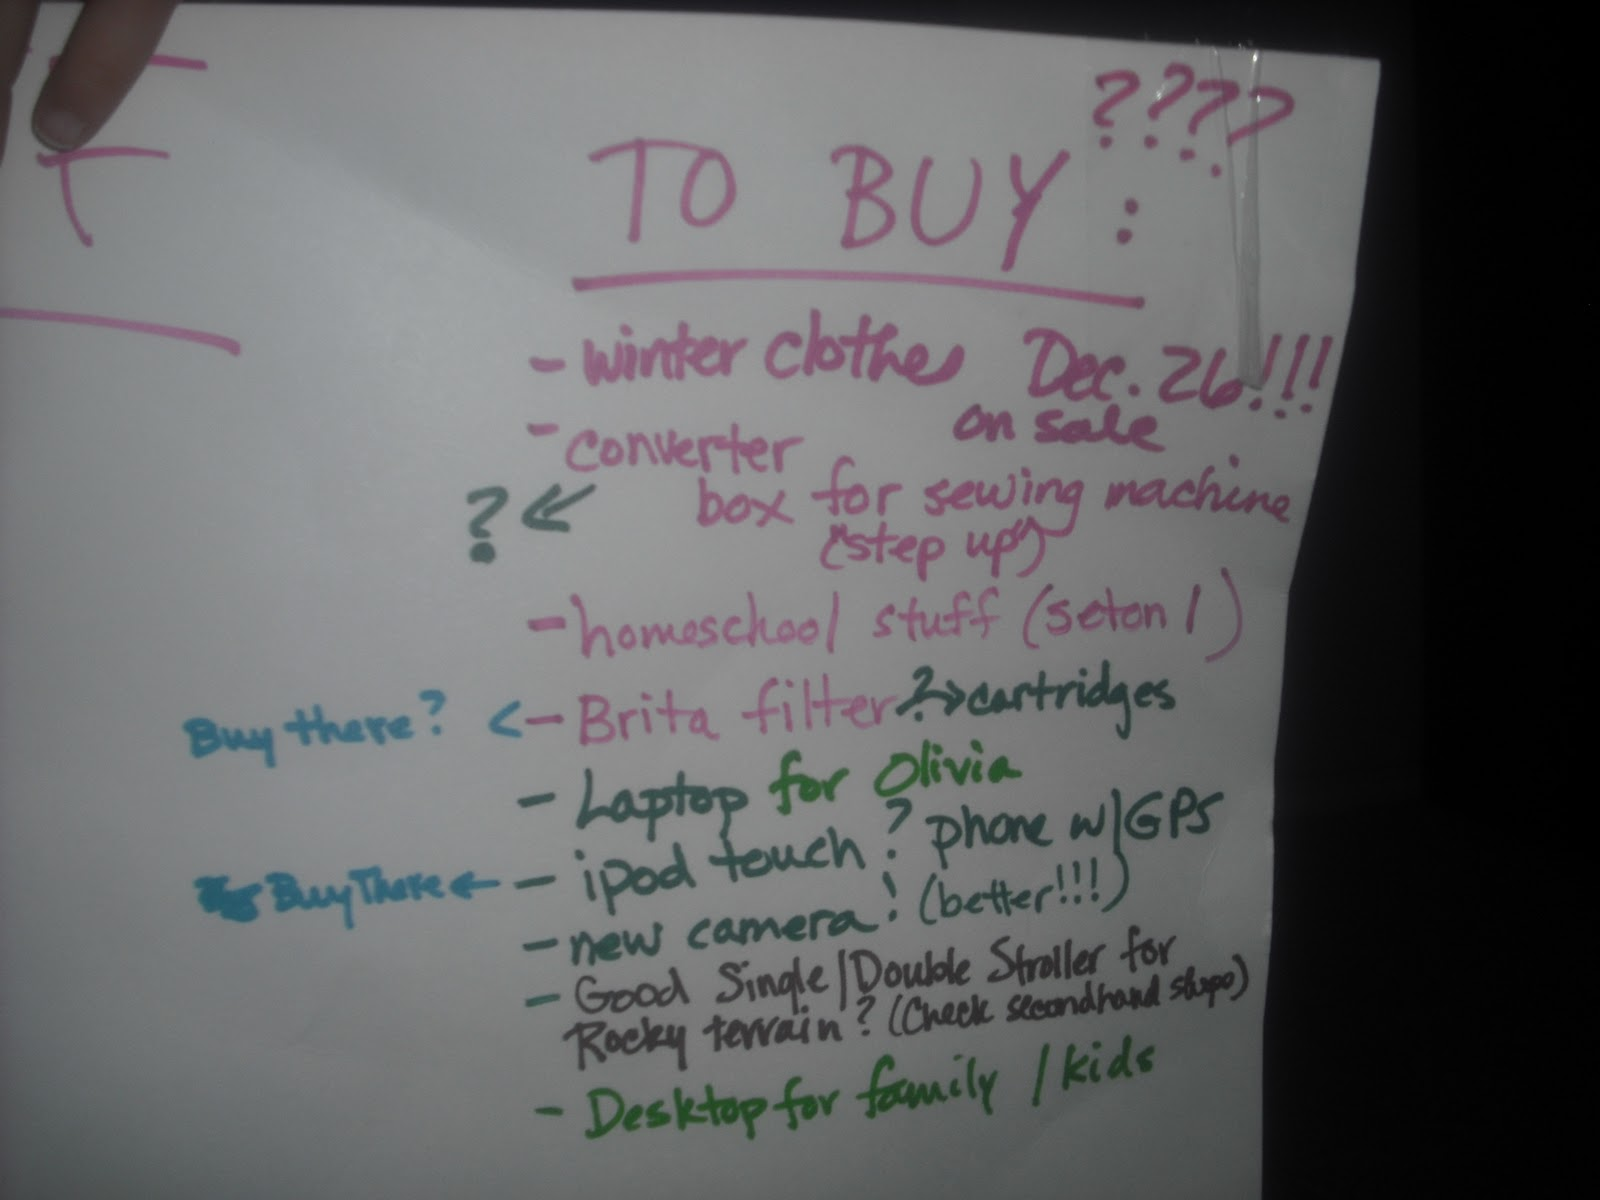 The Stuff Board Part 2 Buying And Princesses